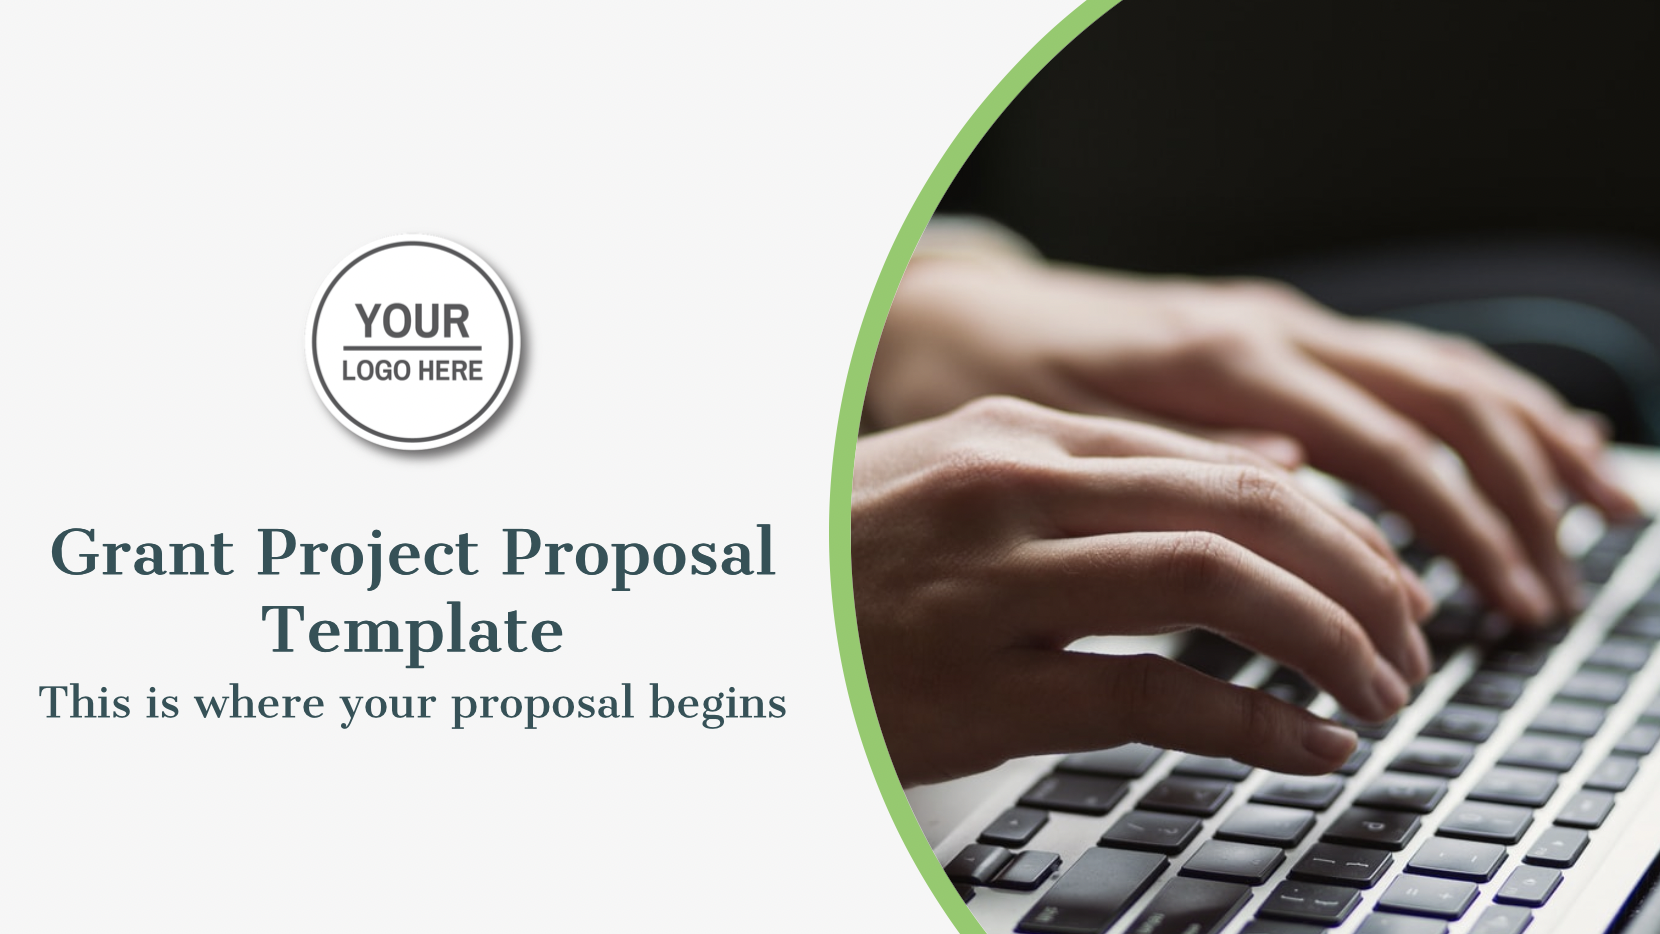 You can list out the tasks and activities that relate to the project, explain why the project is significant, and where the idea originated from. You can also refer to the proposal document as a marketing document that will maintain and enforce a positive relationship between the project stakeholders and your organization.